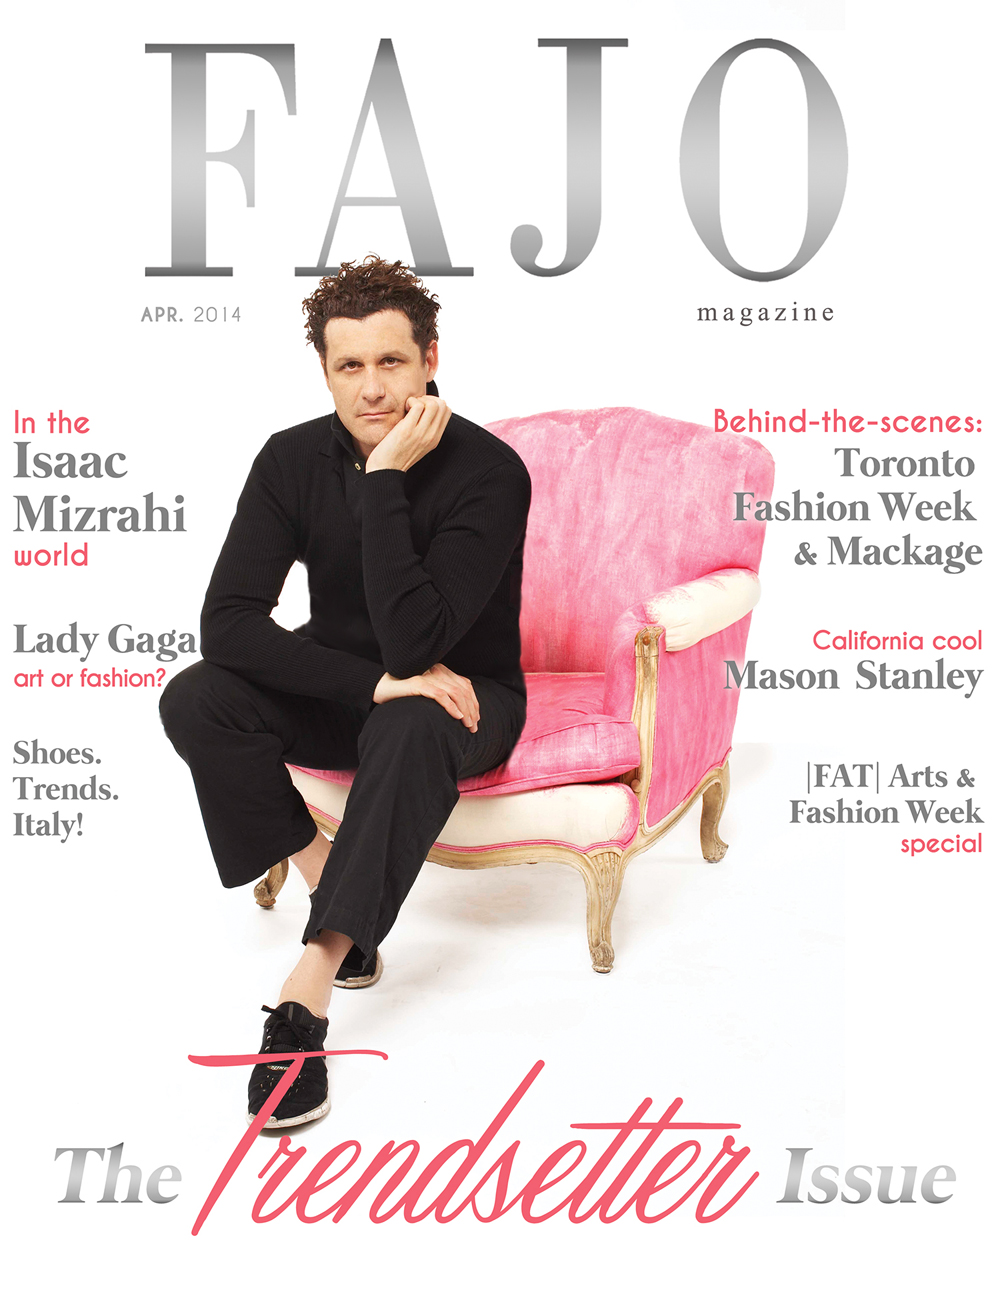 Isaac Mizrahi on the cover of our April issue. Graphic design by Kalynn Friesen.